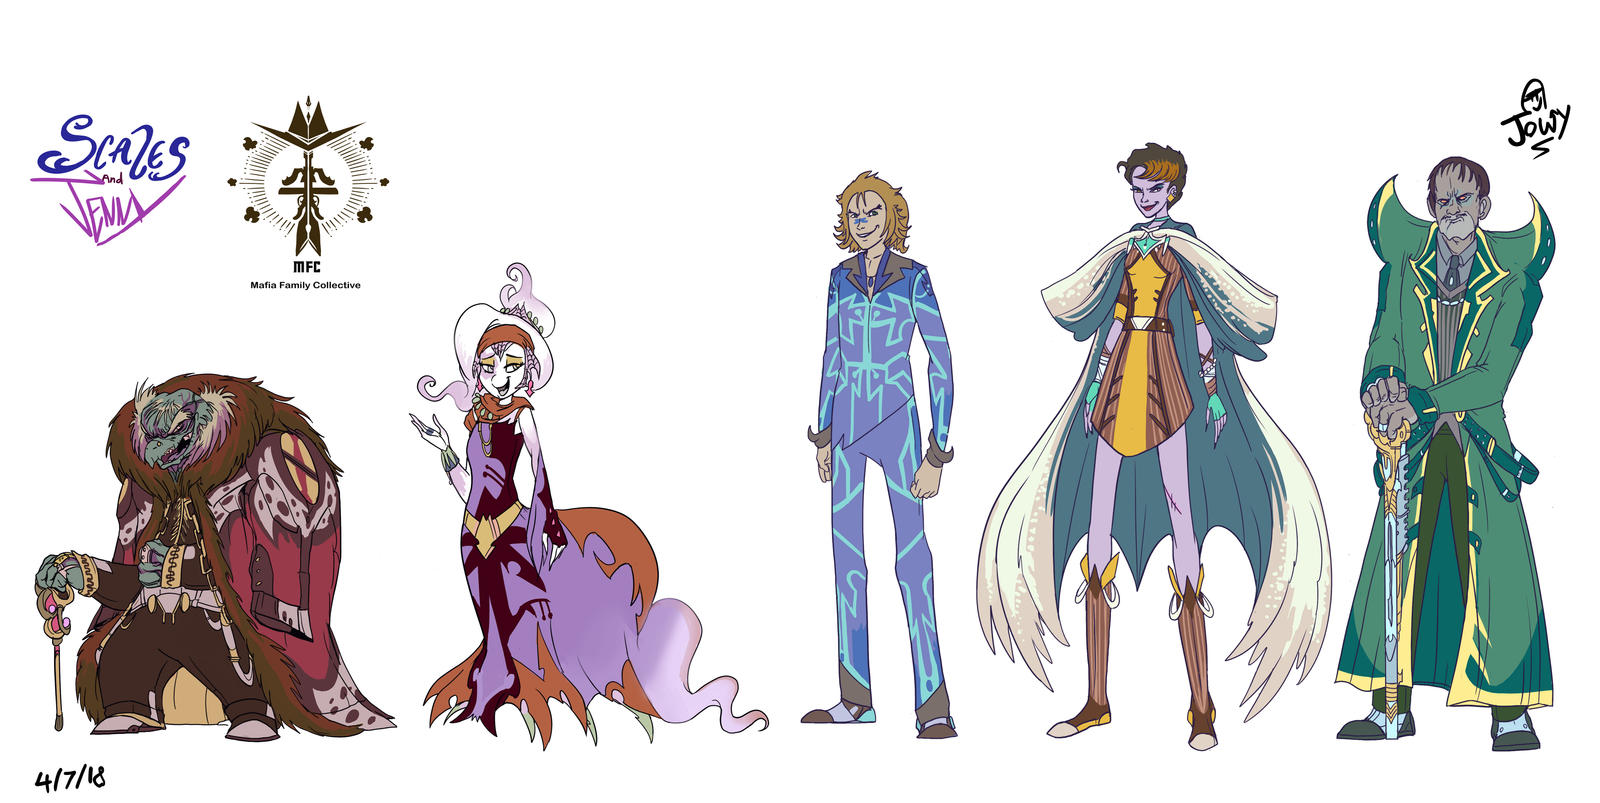 Project Scales and Jenny MFC bosses by Jowybean